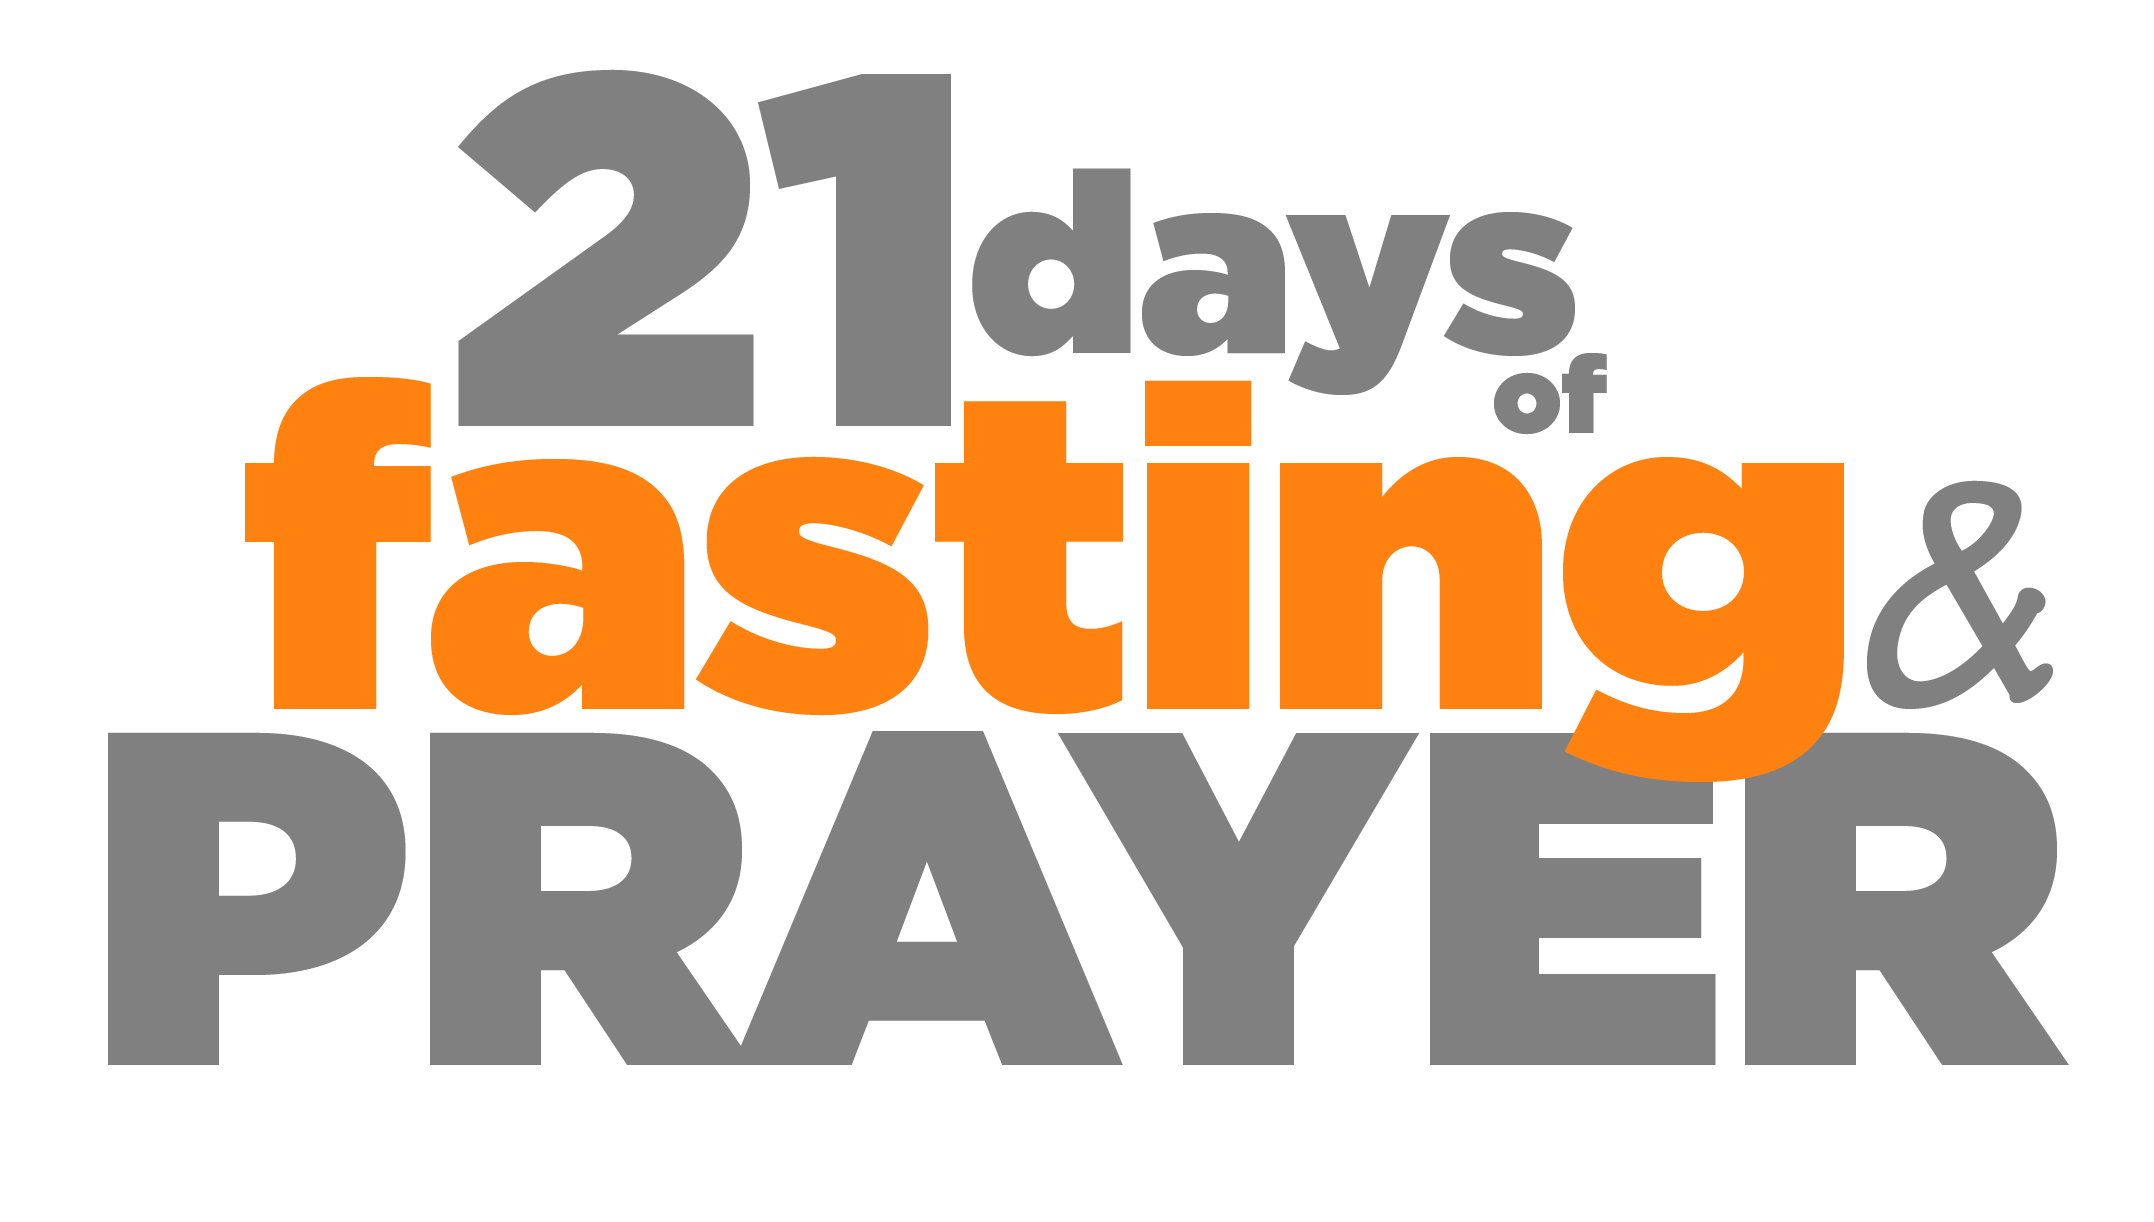 21 days logo_1@3x.png